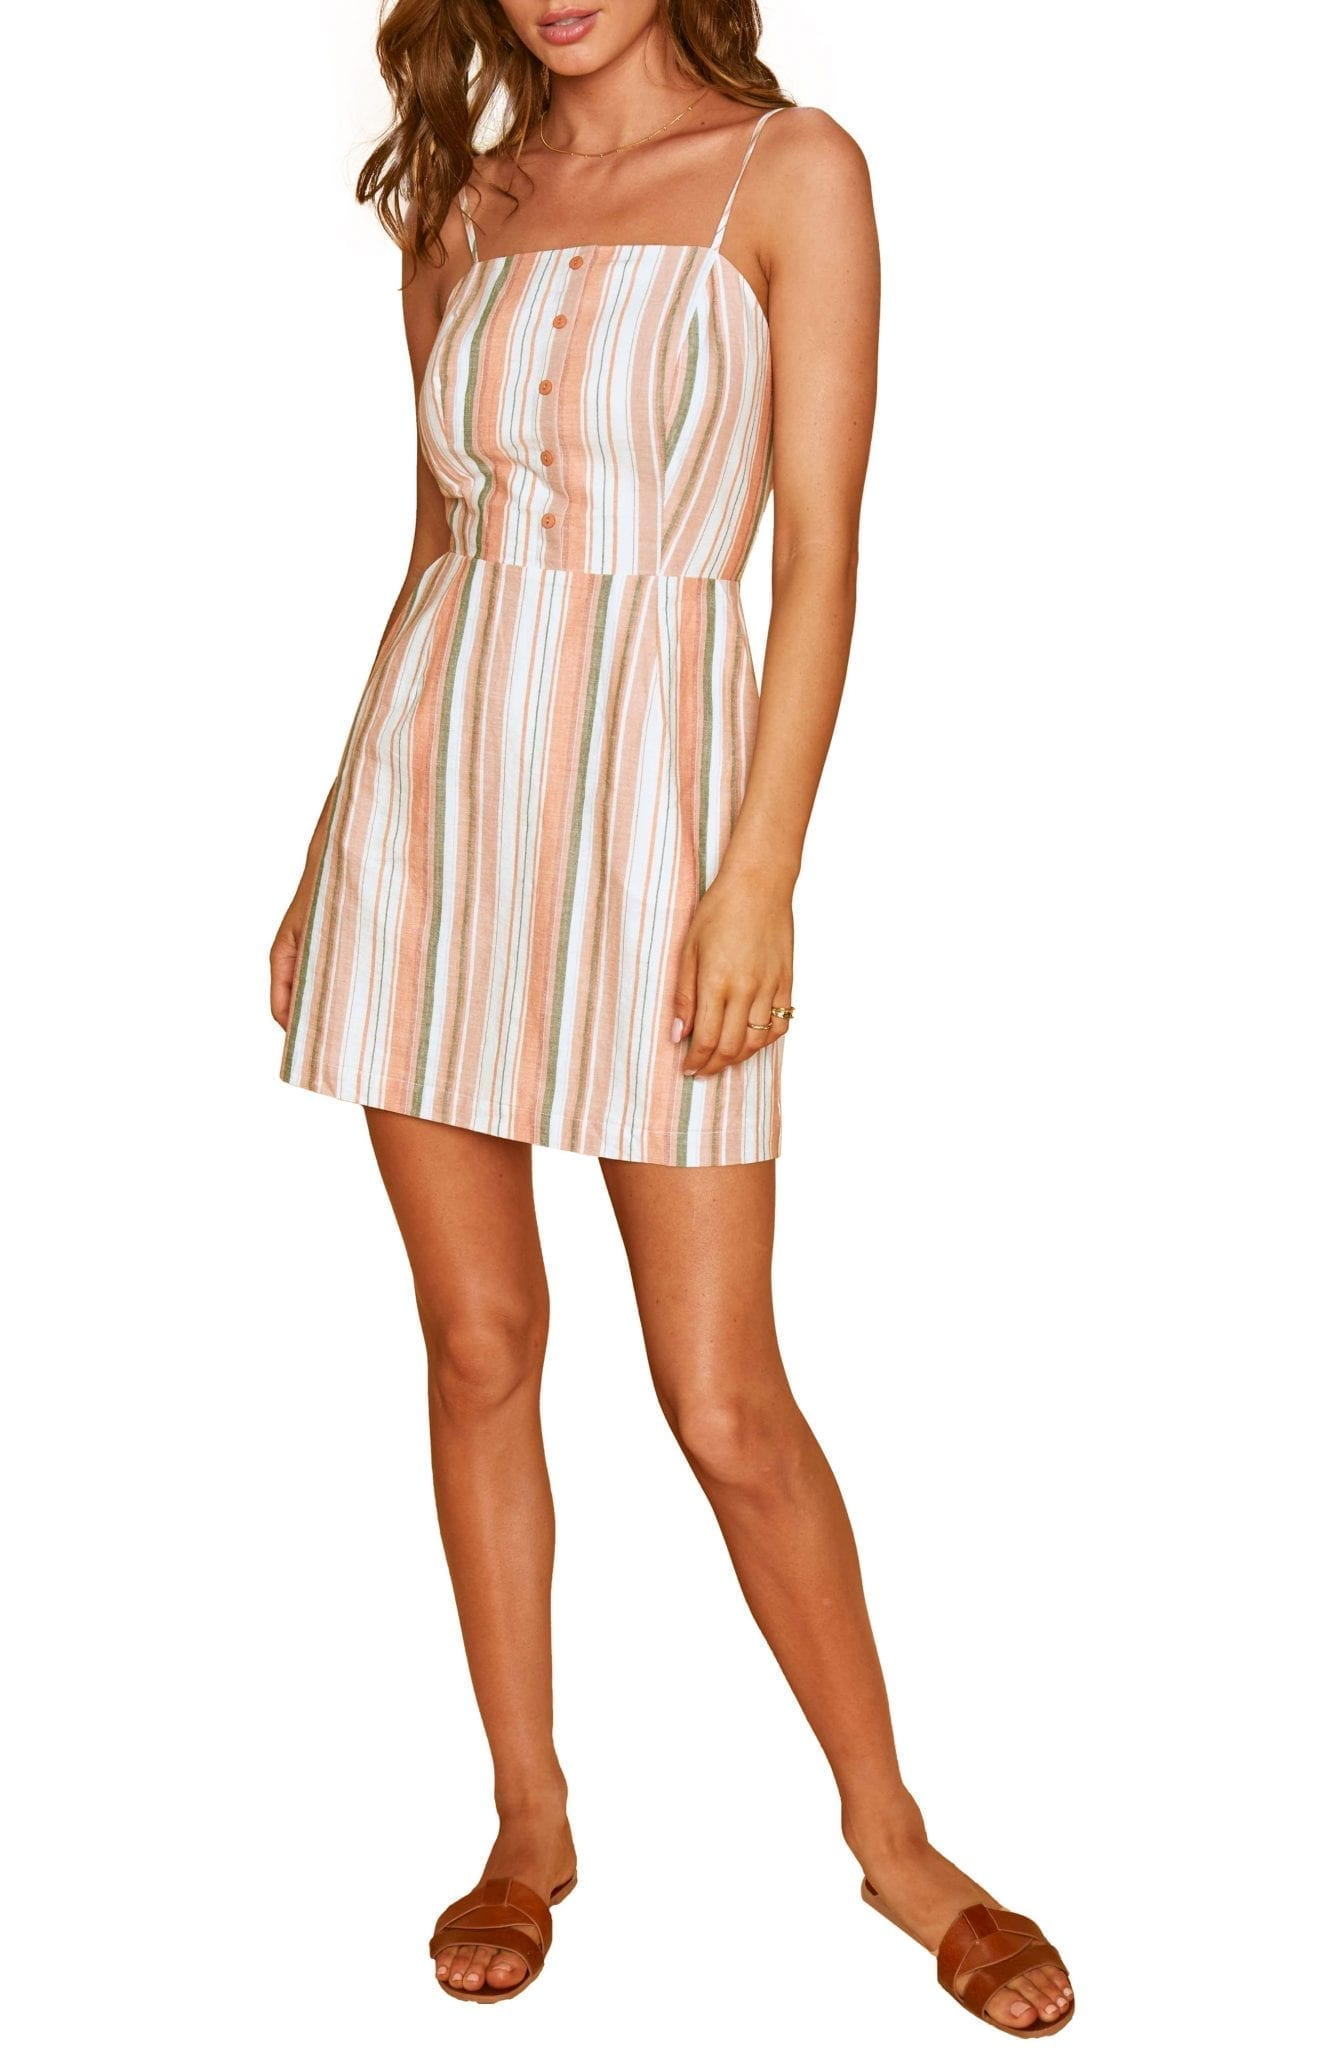 LOST + WANDER City To Country Stripe Mini Dress